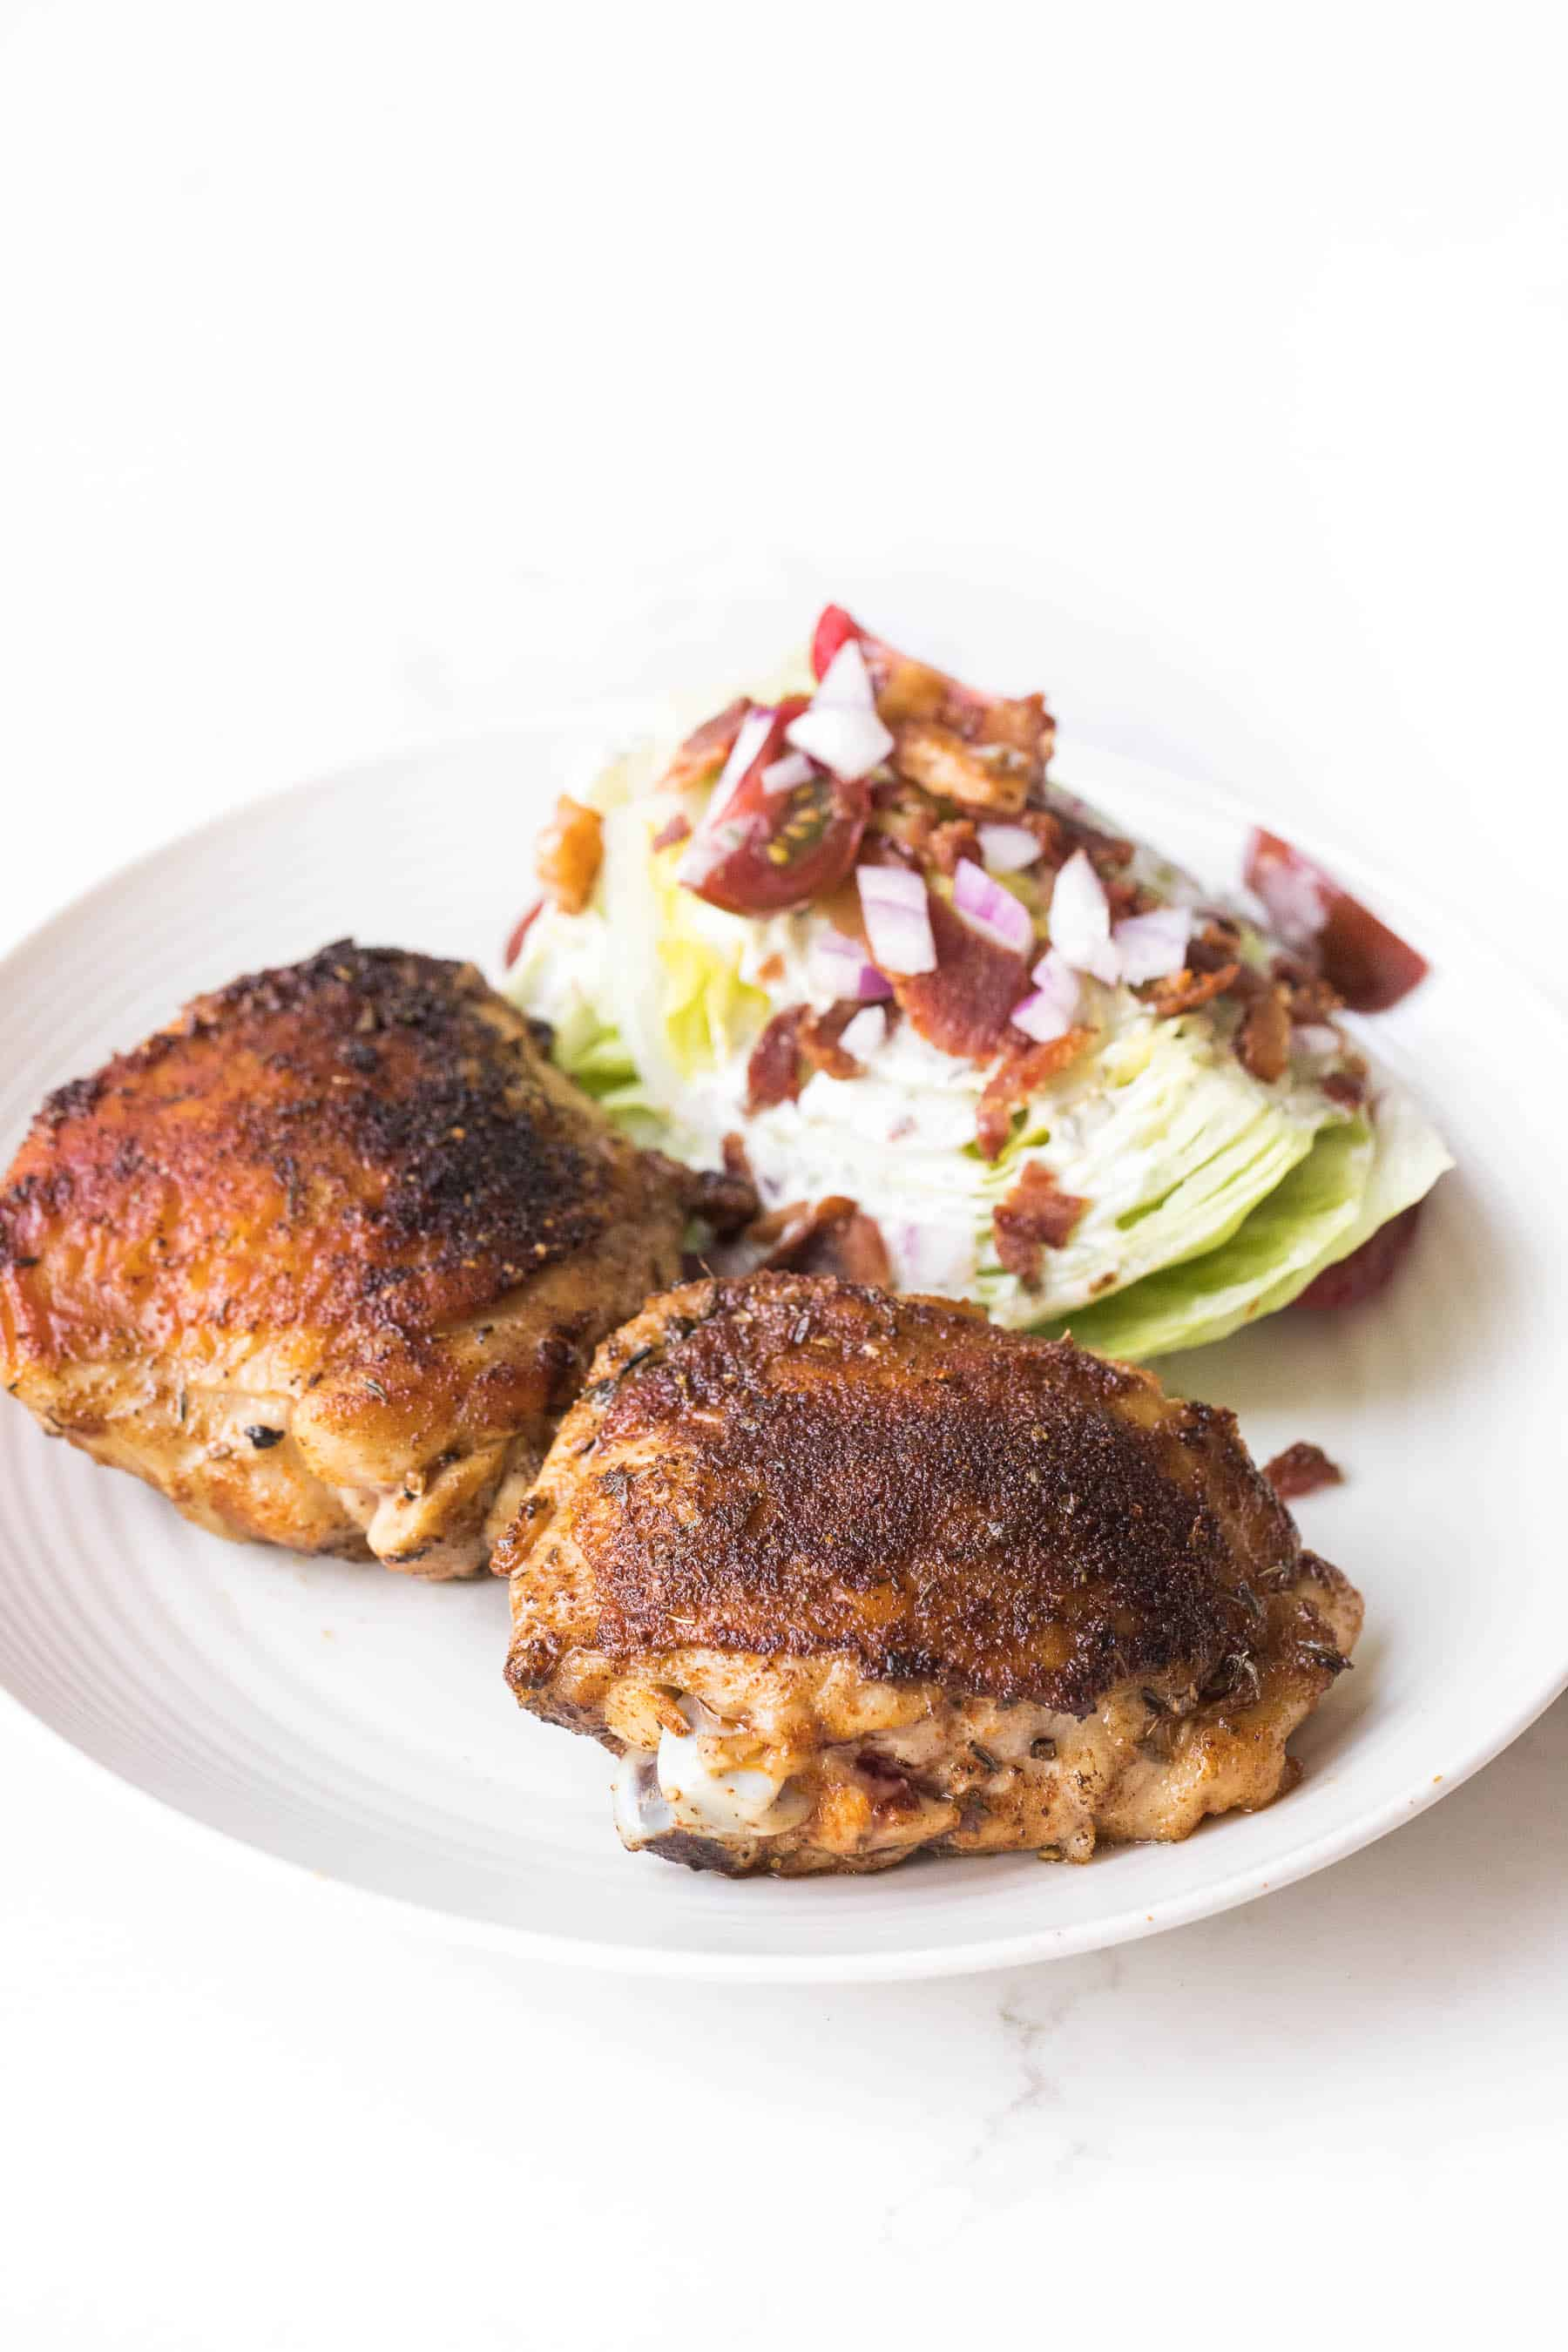 cajun chicken thighs with a wedge salad on a white plate and white background